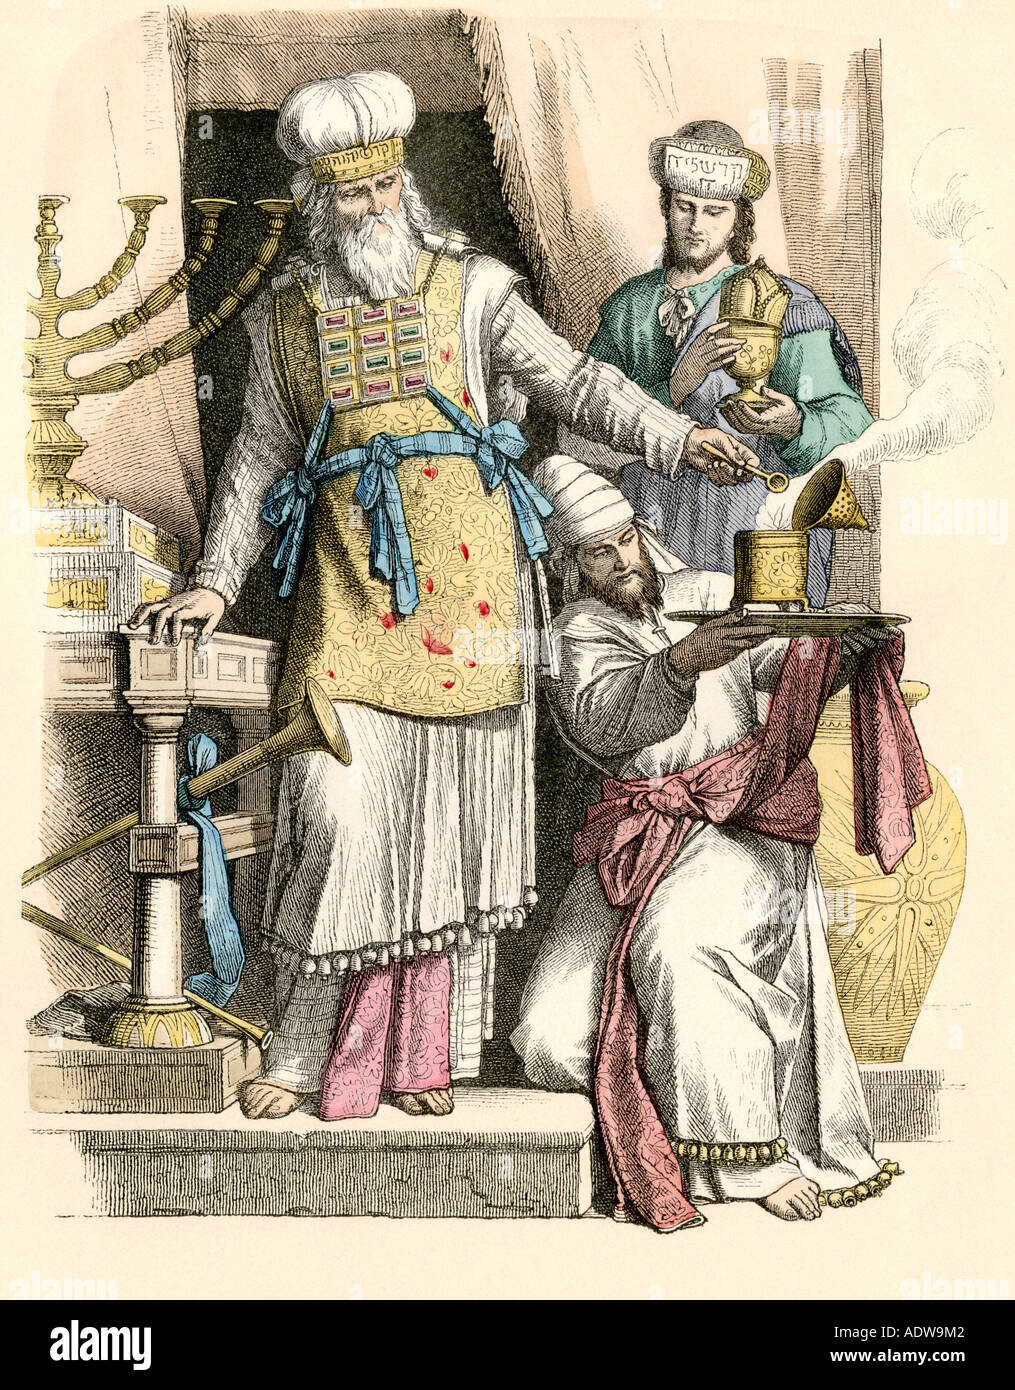 Jewish high priest and Levite conducting a ceremony in ancient Israel. Hand-colored print - Stock Image